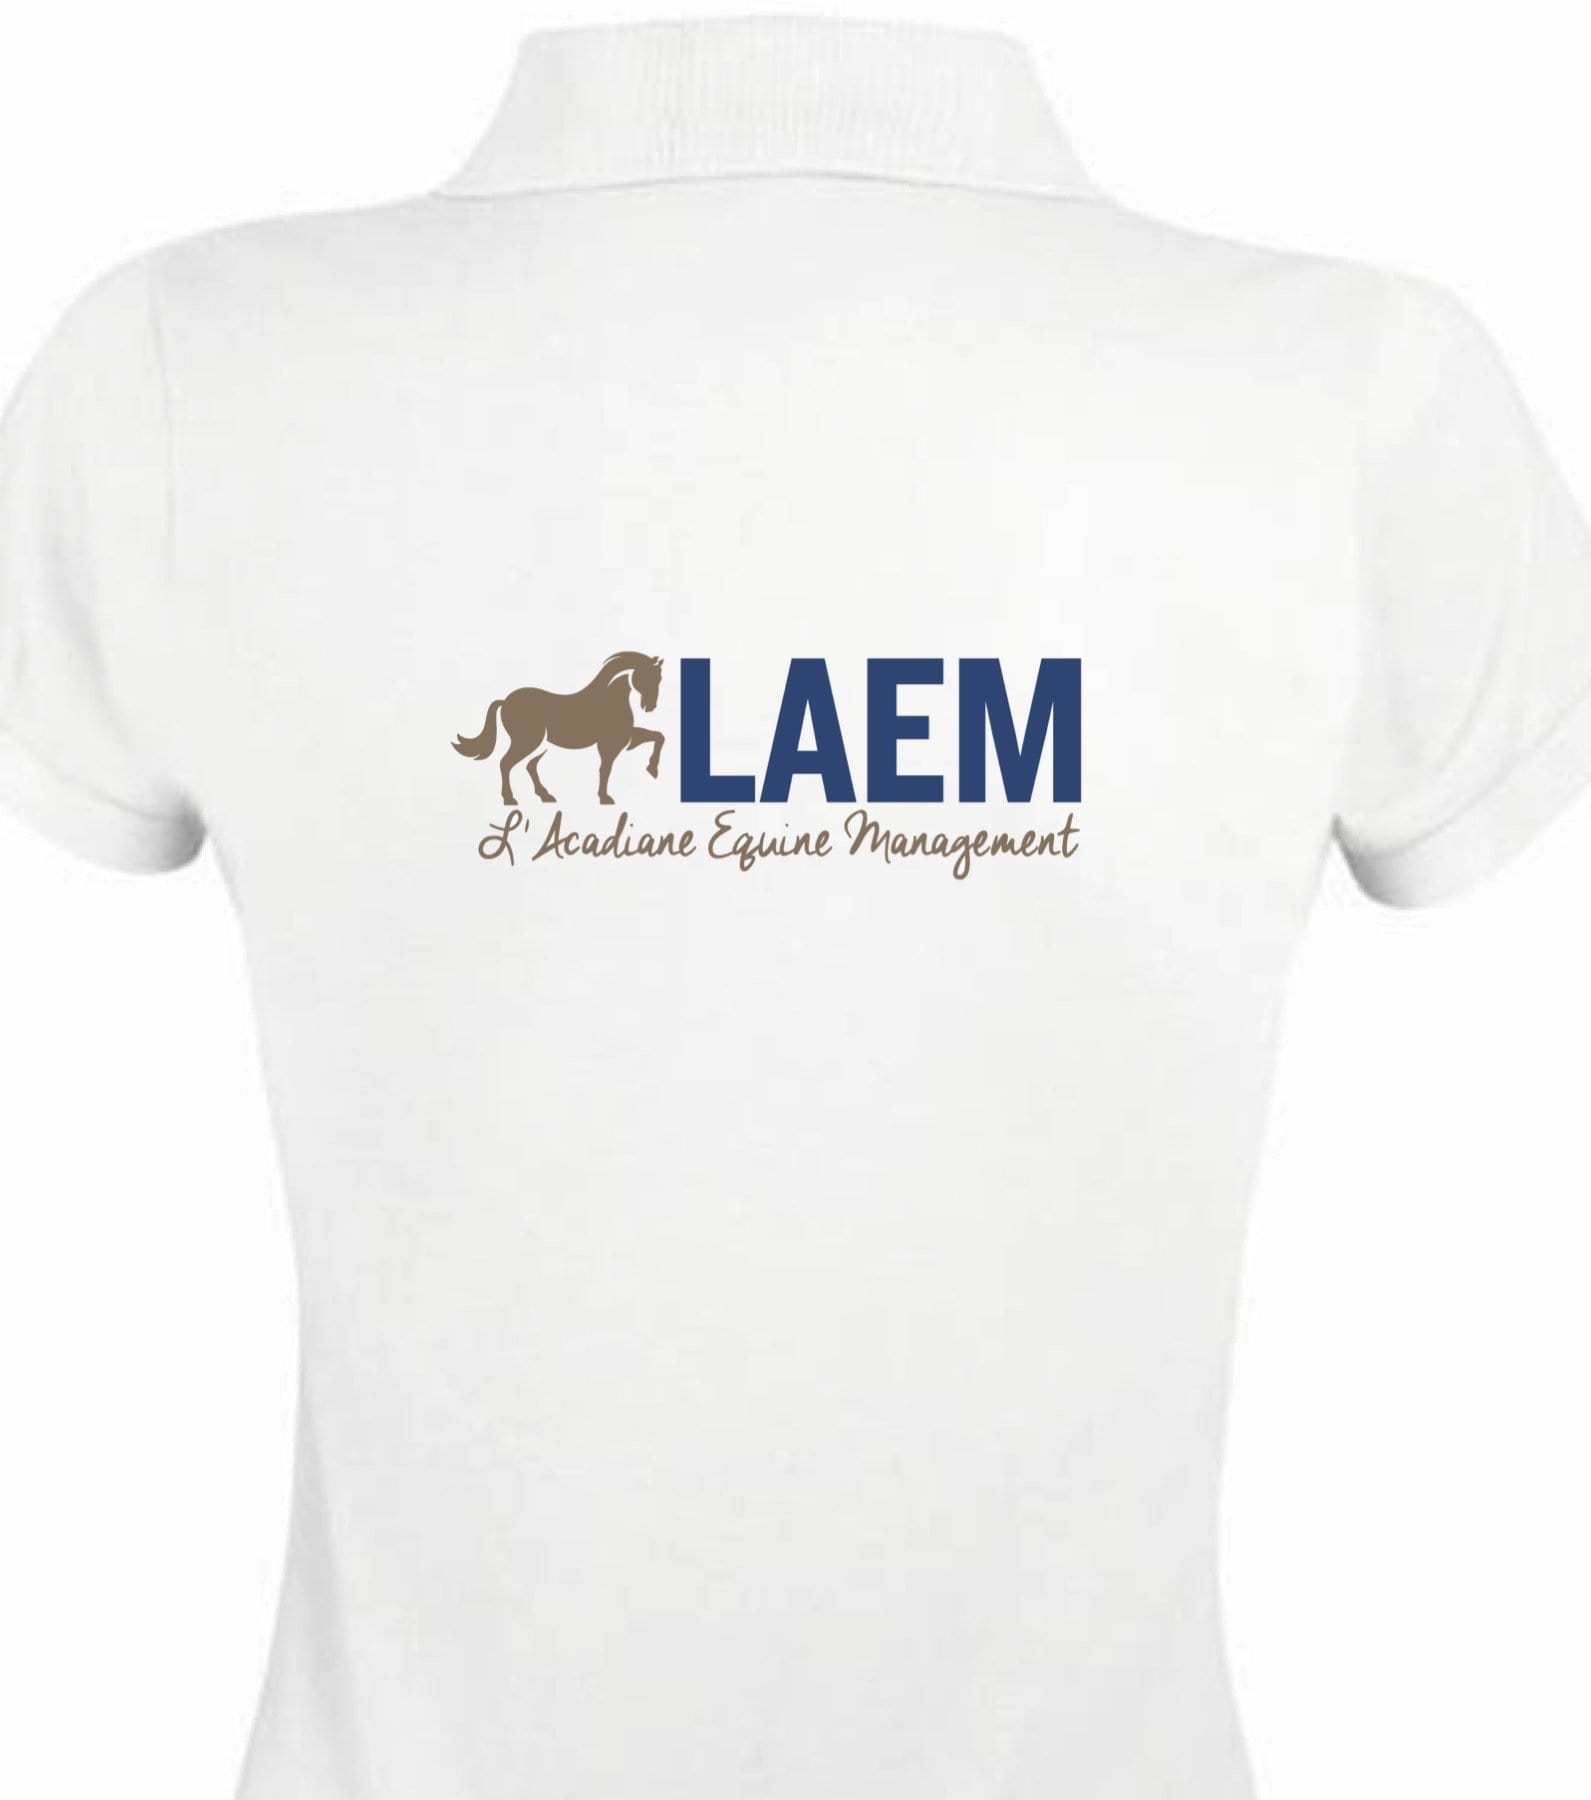 Equestrian Team Apparel Custom Team Shirts Back / XXL LAEM Short Sleeve equestrian team apparel online tack store mobile tack store custom farm apparel custom show stable clothing equestrian lifestyle horse show clothing riding clothes horses equestrian tack store